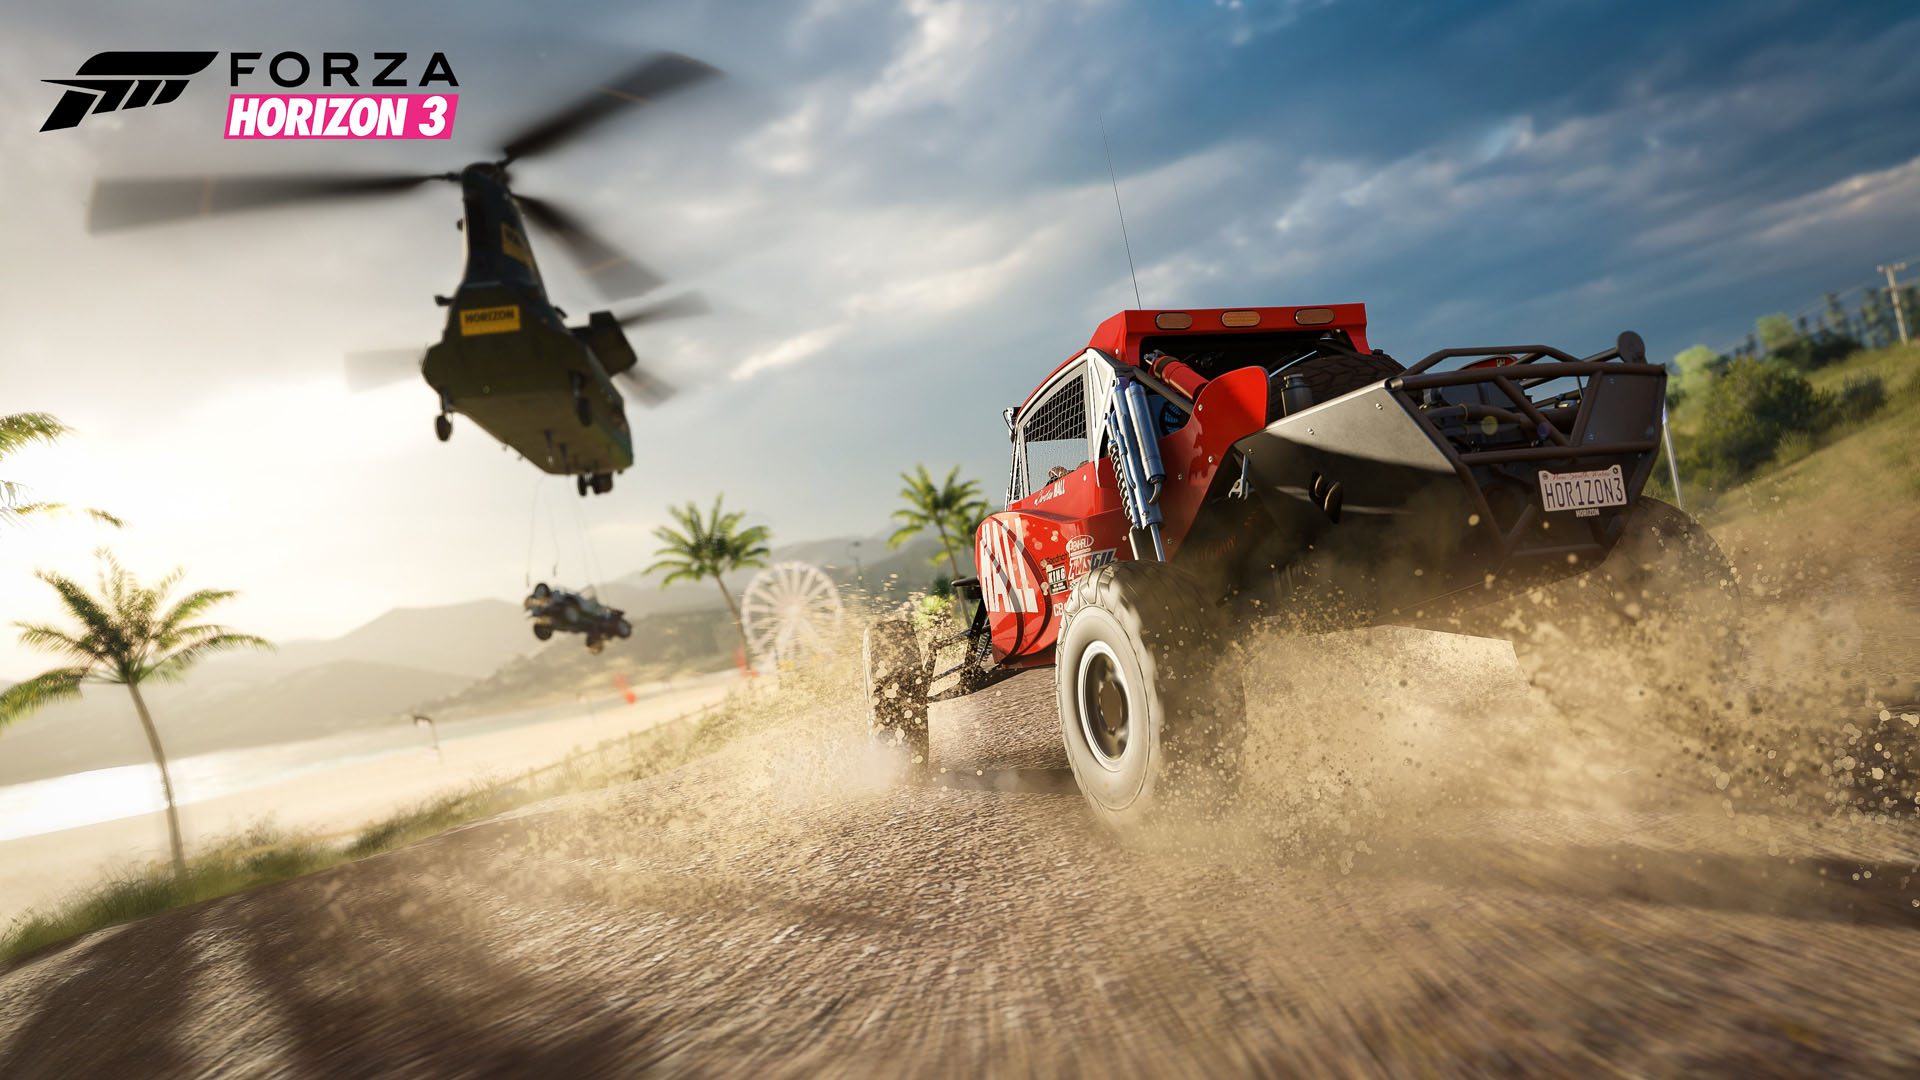 forza-horizon-3-vgprofessional-review-8